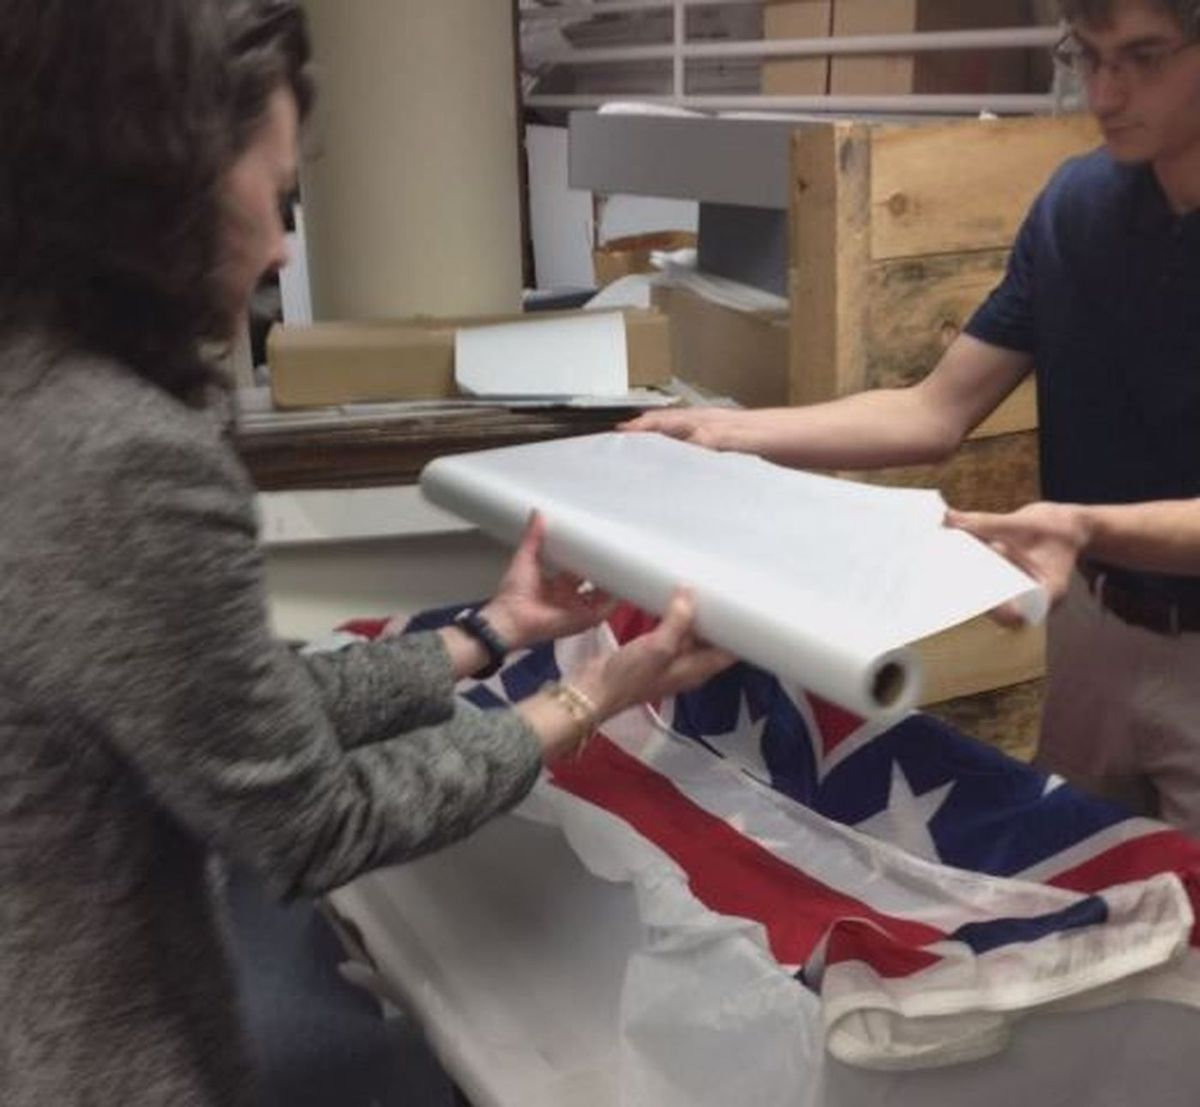 Confederate flag that once flew over SC Statehouse now on display in state's Confederate Relic Room